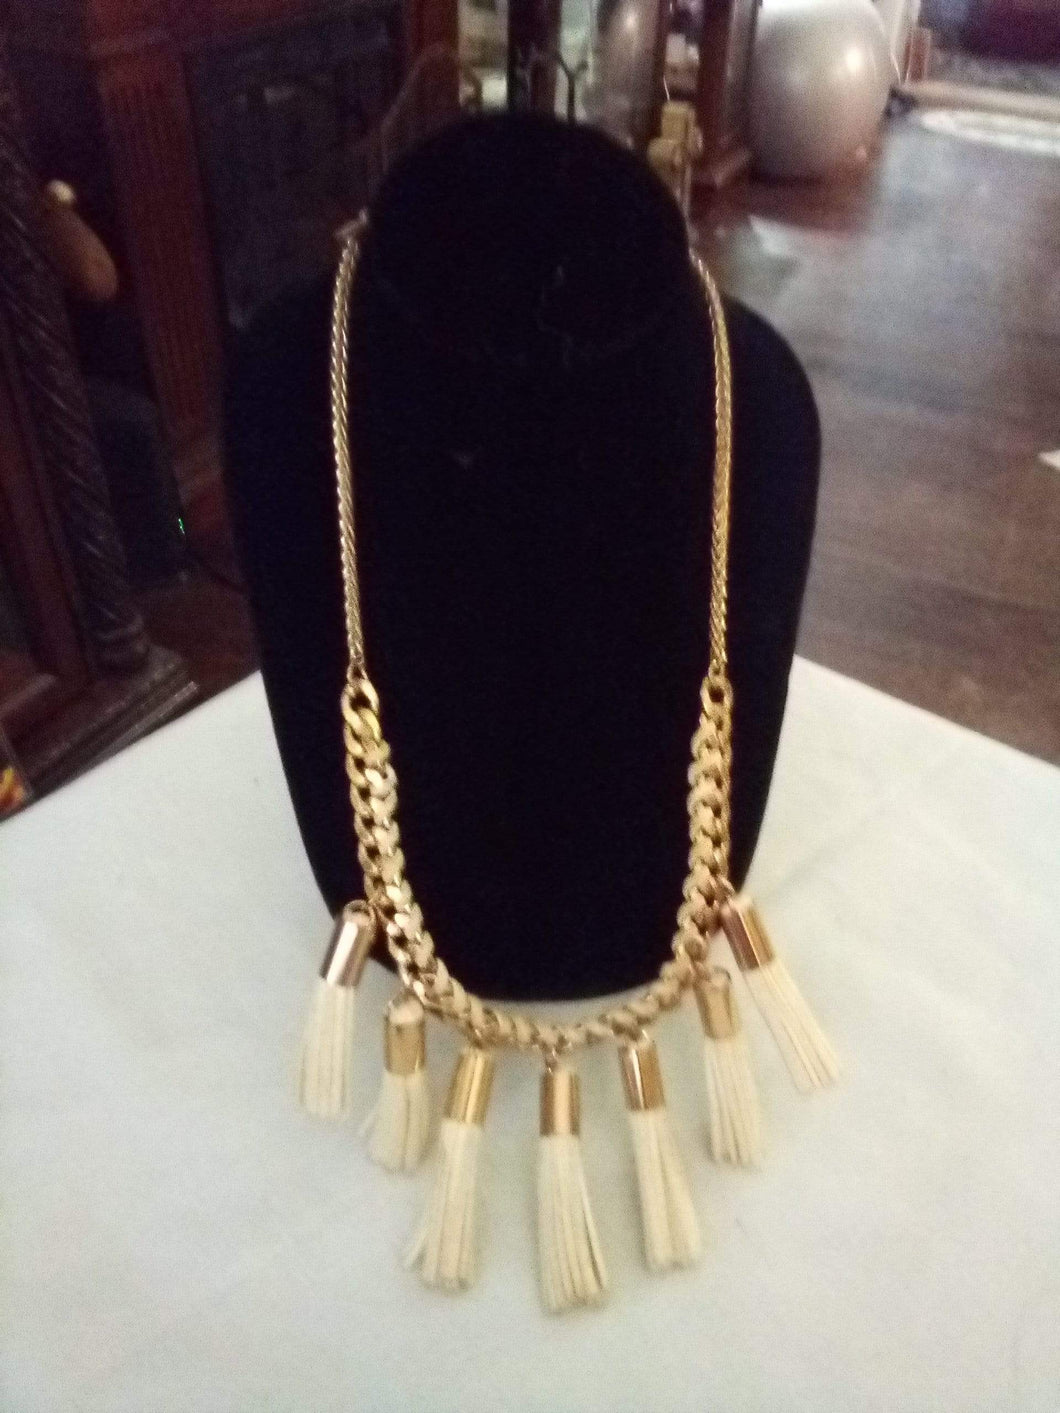 Unique necklace with hanging tassels - B&P'sringsnthings